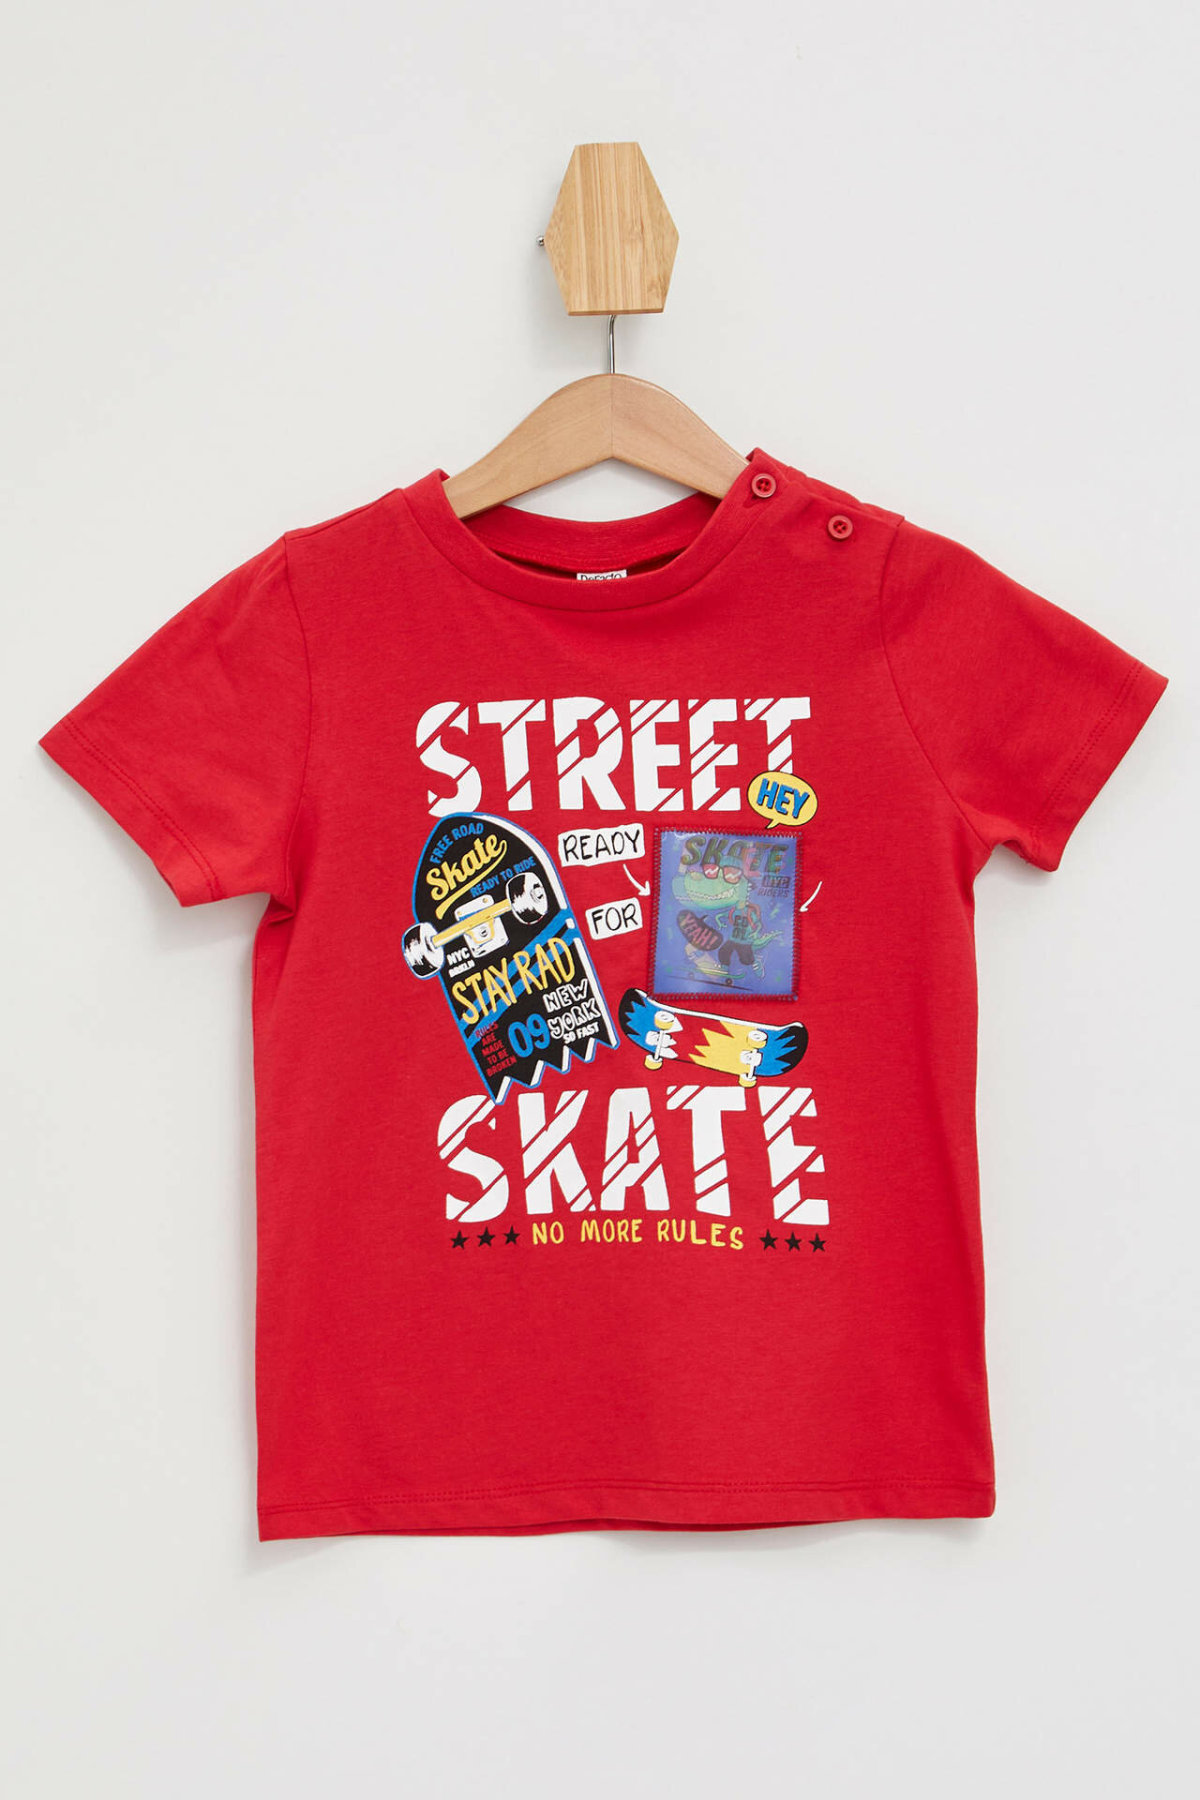 DeFacto New Fashion BabyBoy Short Sleeve Tee Kids Casual O-neck Letter Pattern T-Shirt Boys Loose Comfort Tops Red- L6178A219HS